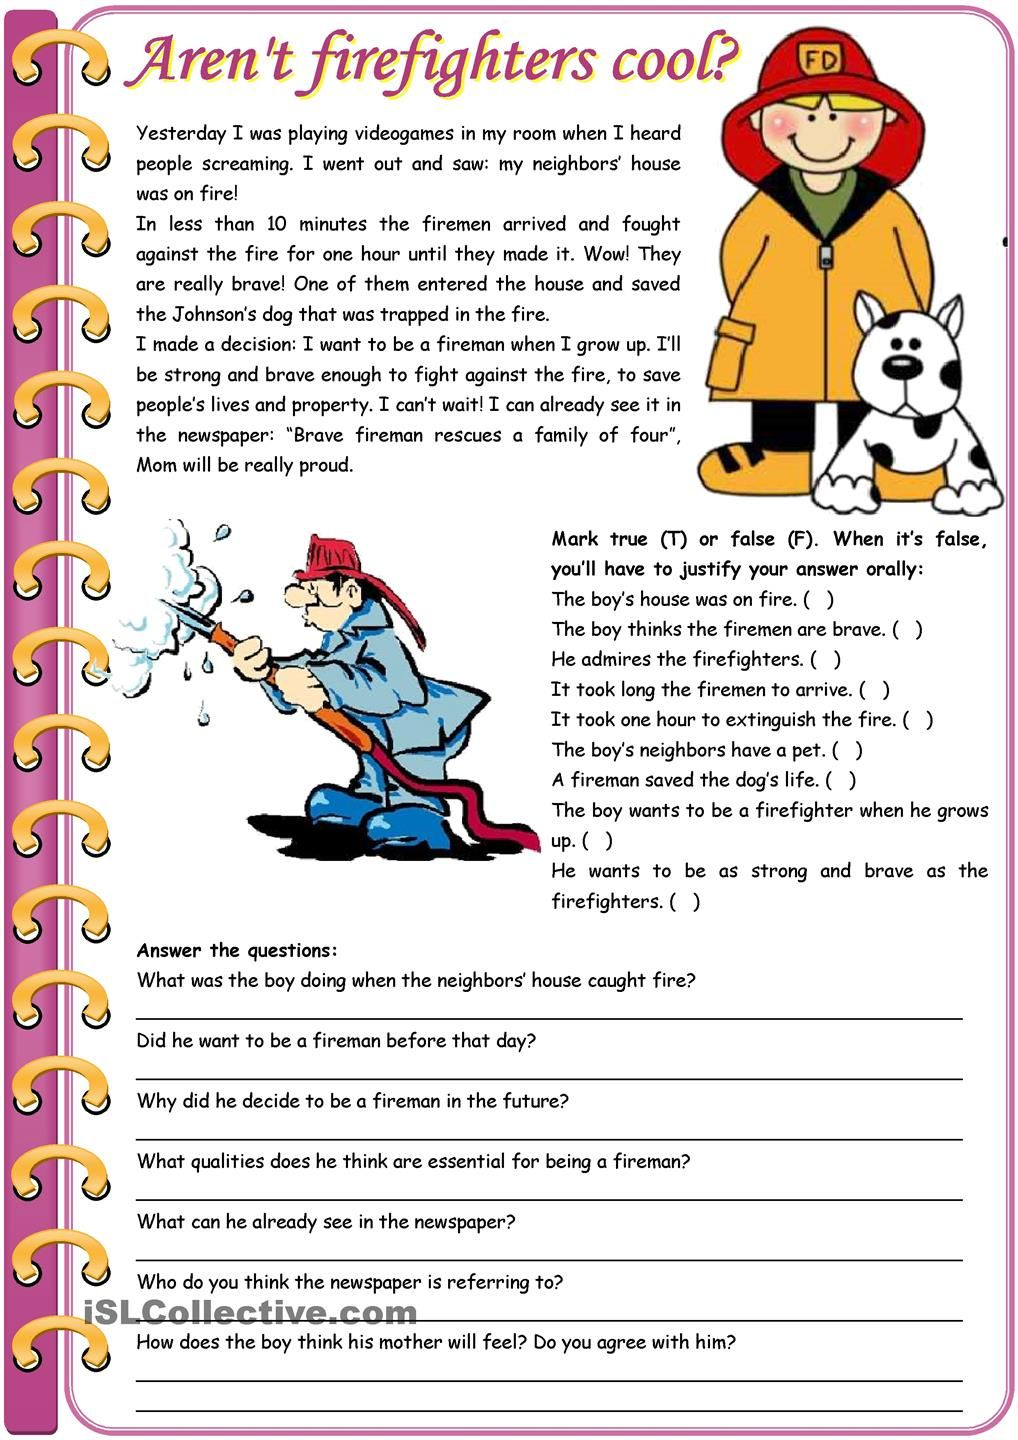 Worksheet Elementary Reading Comprehension Test free printable reading comprehension worksheets firefighters cool grammar comparative